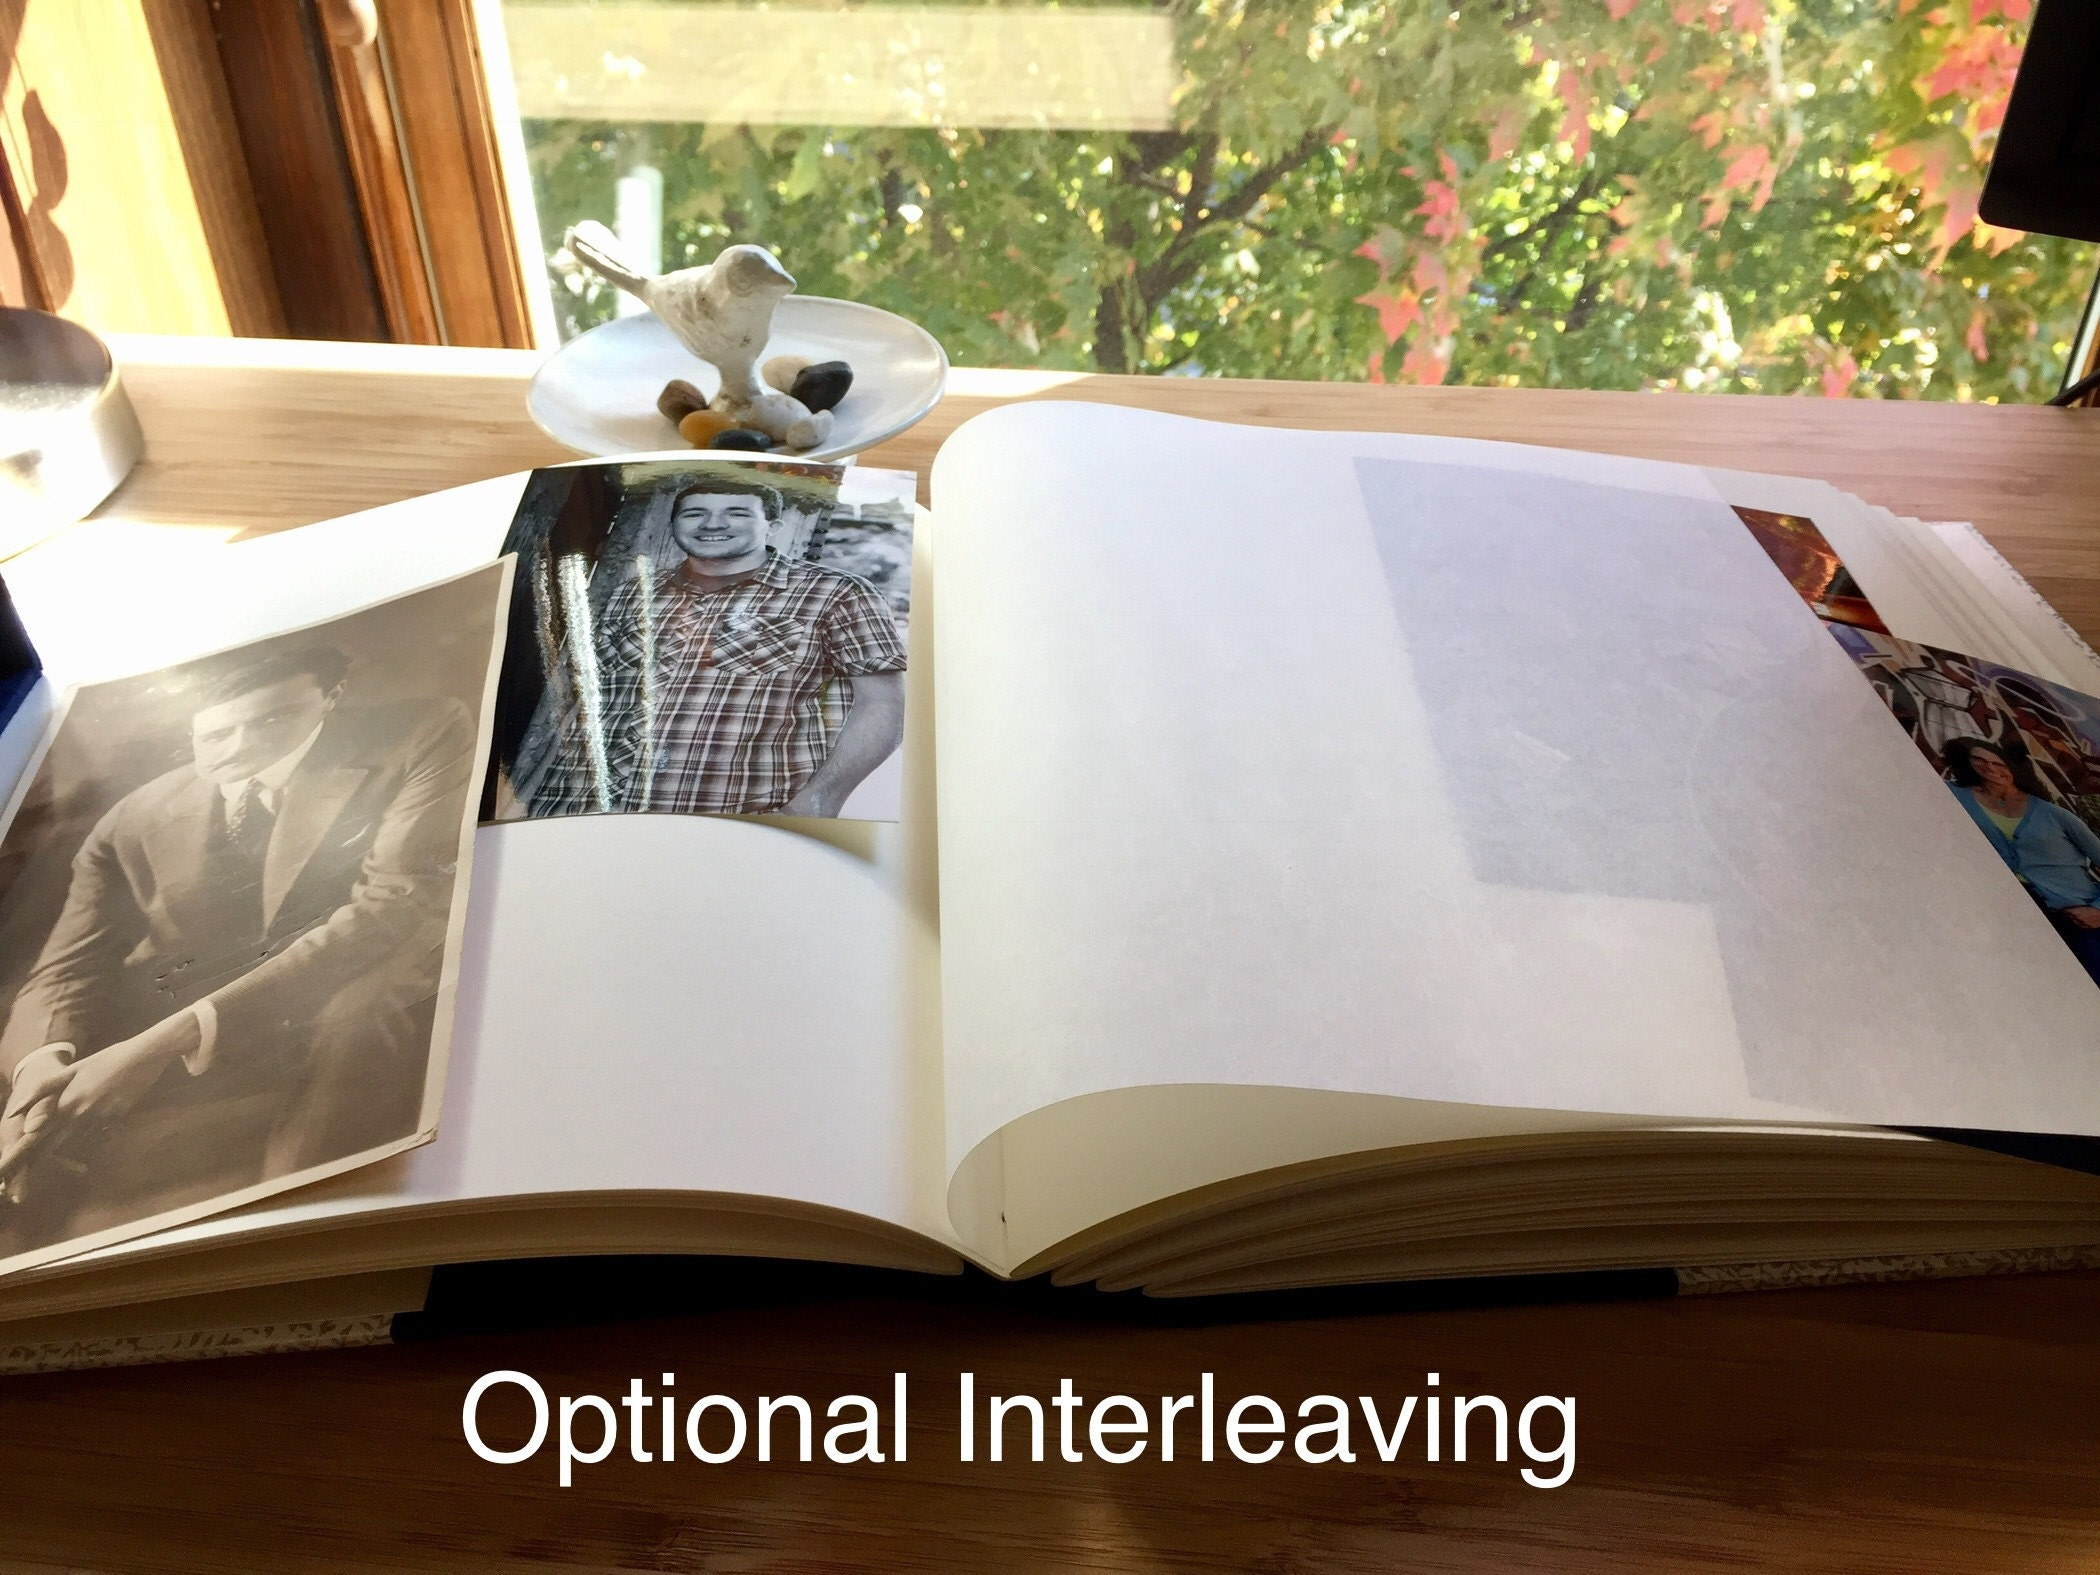 optional interleaving